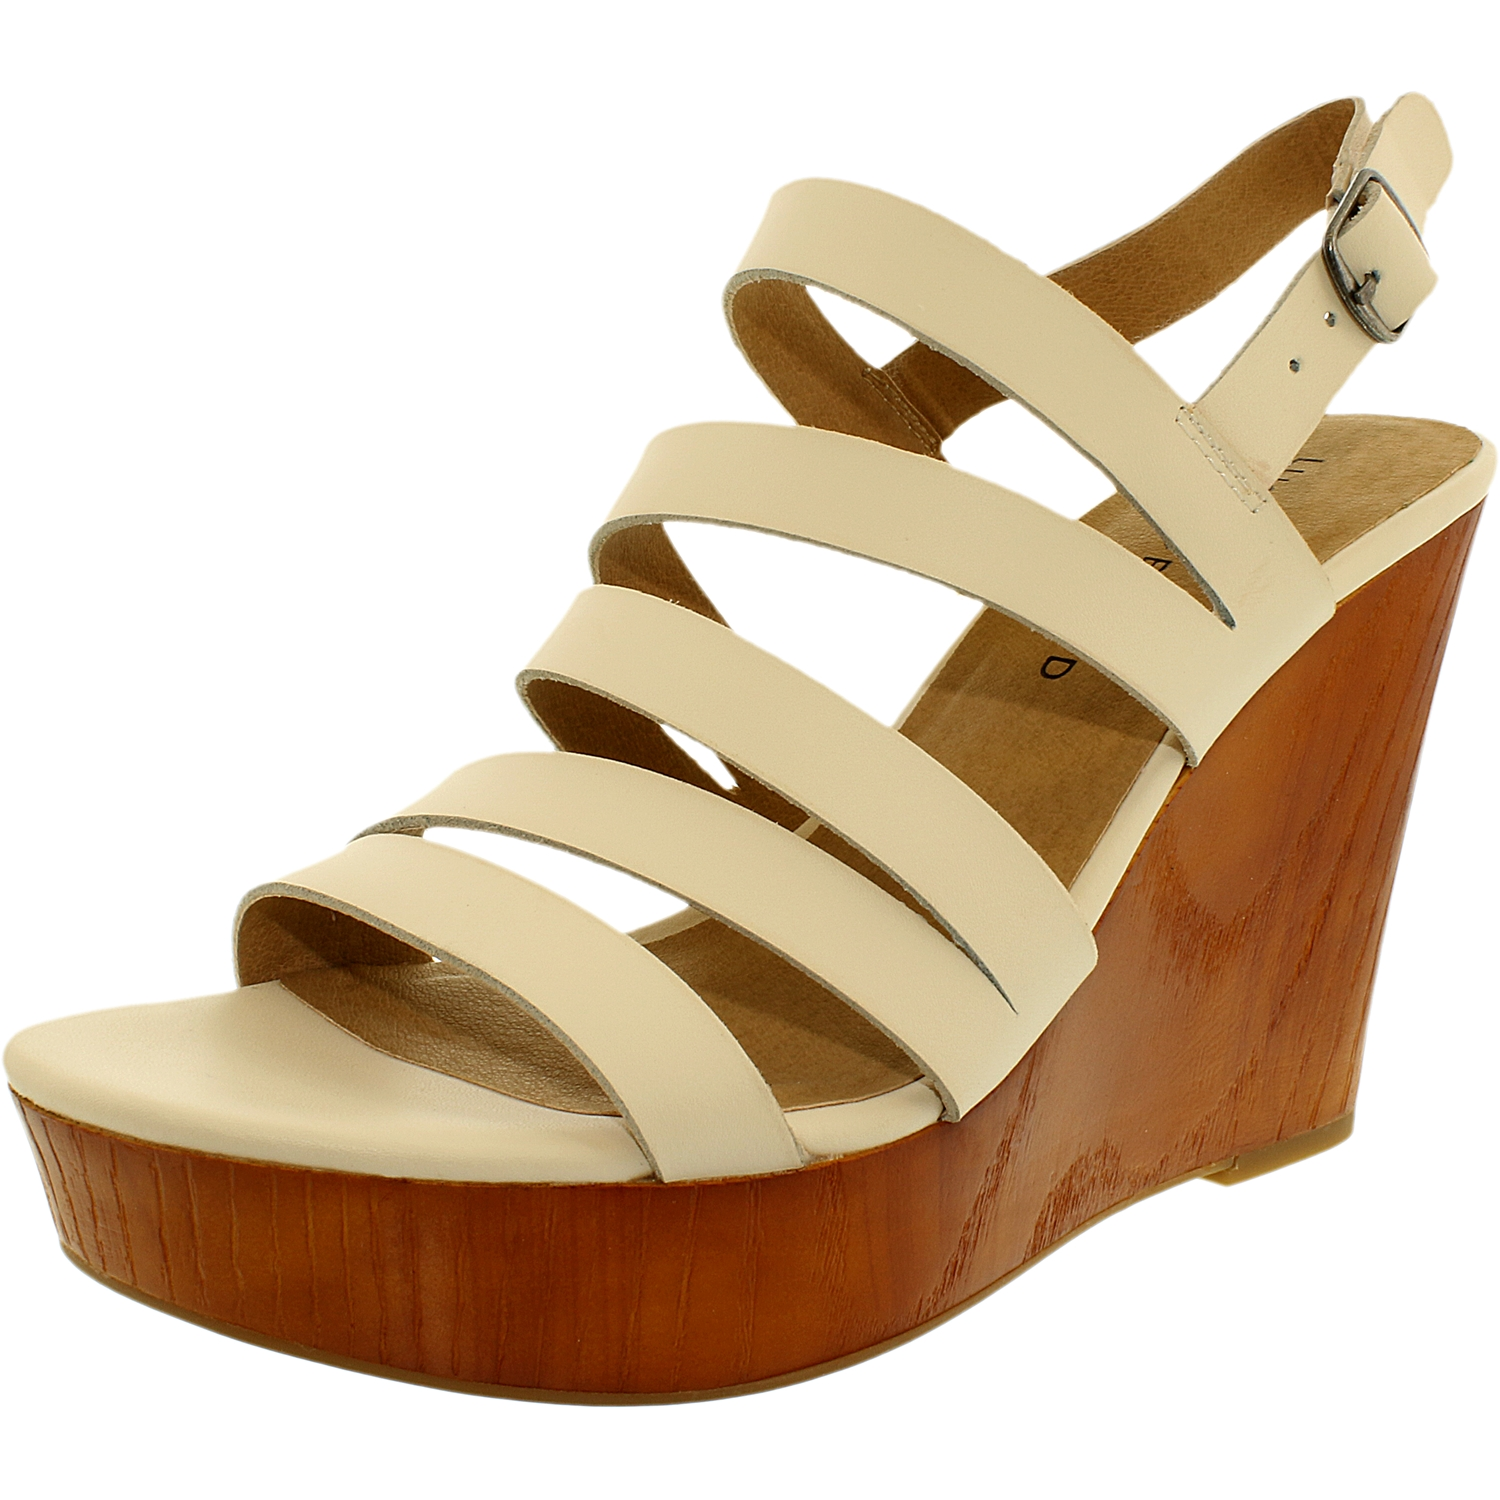 Lucky Women's Larinaa Leather Linen Ankle-High Leather Sandal - 7M